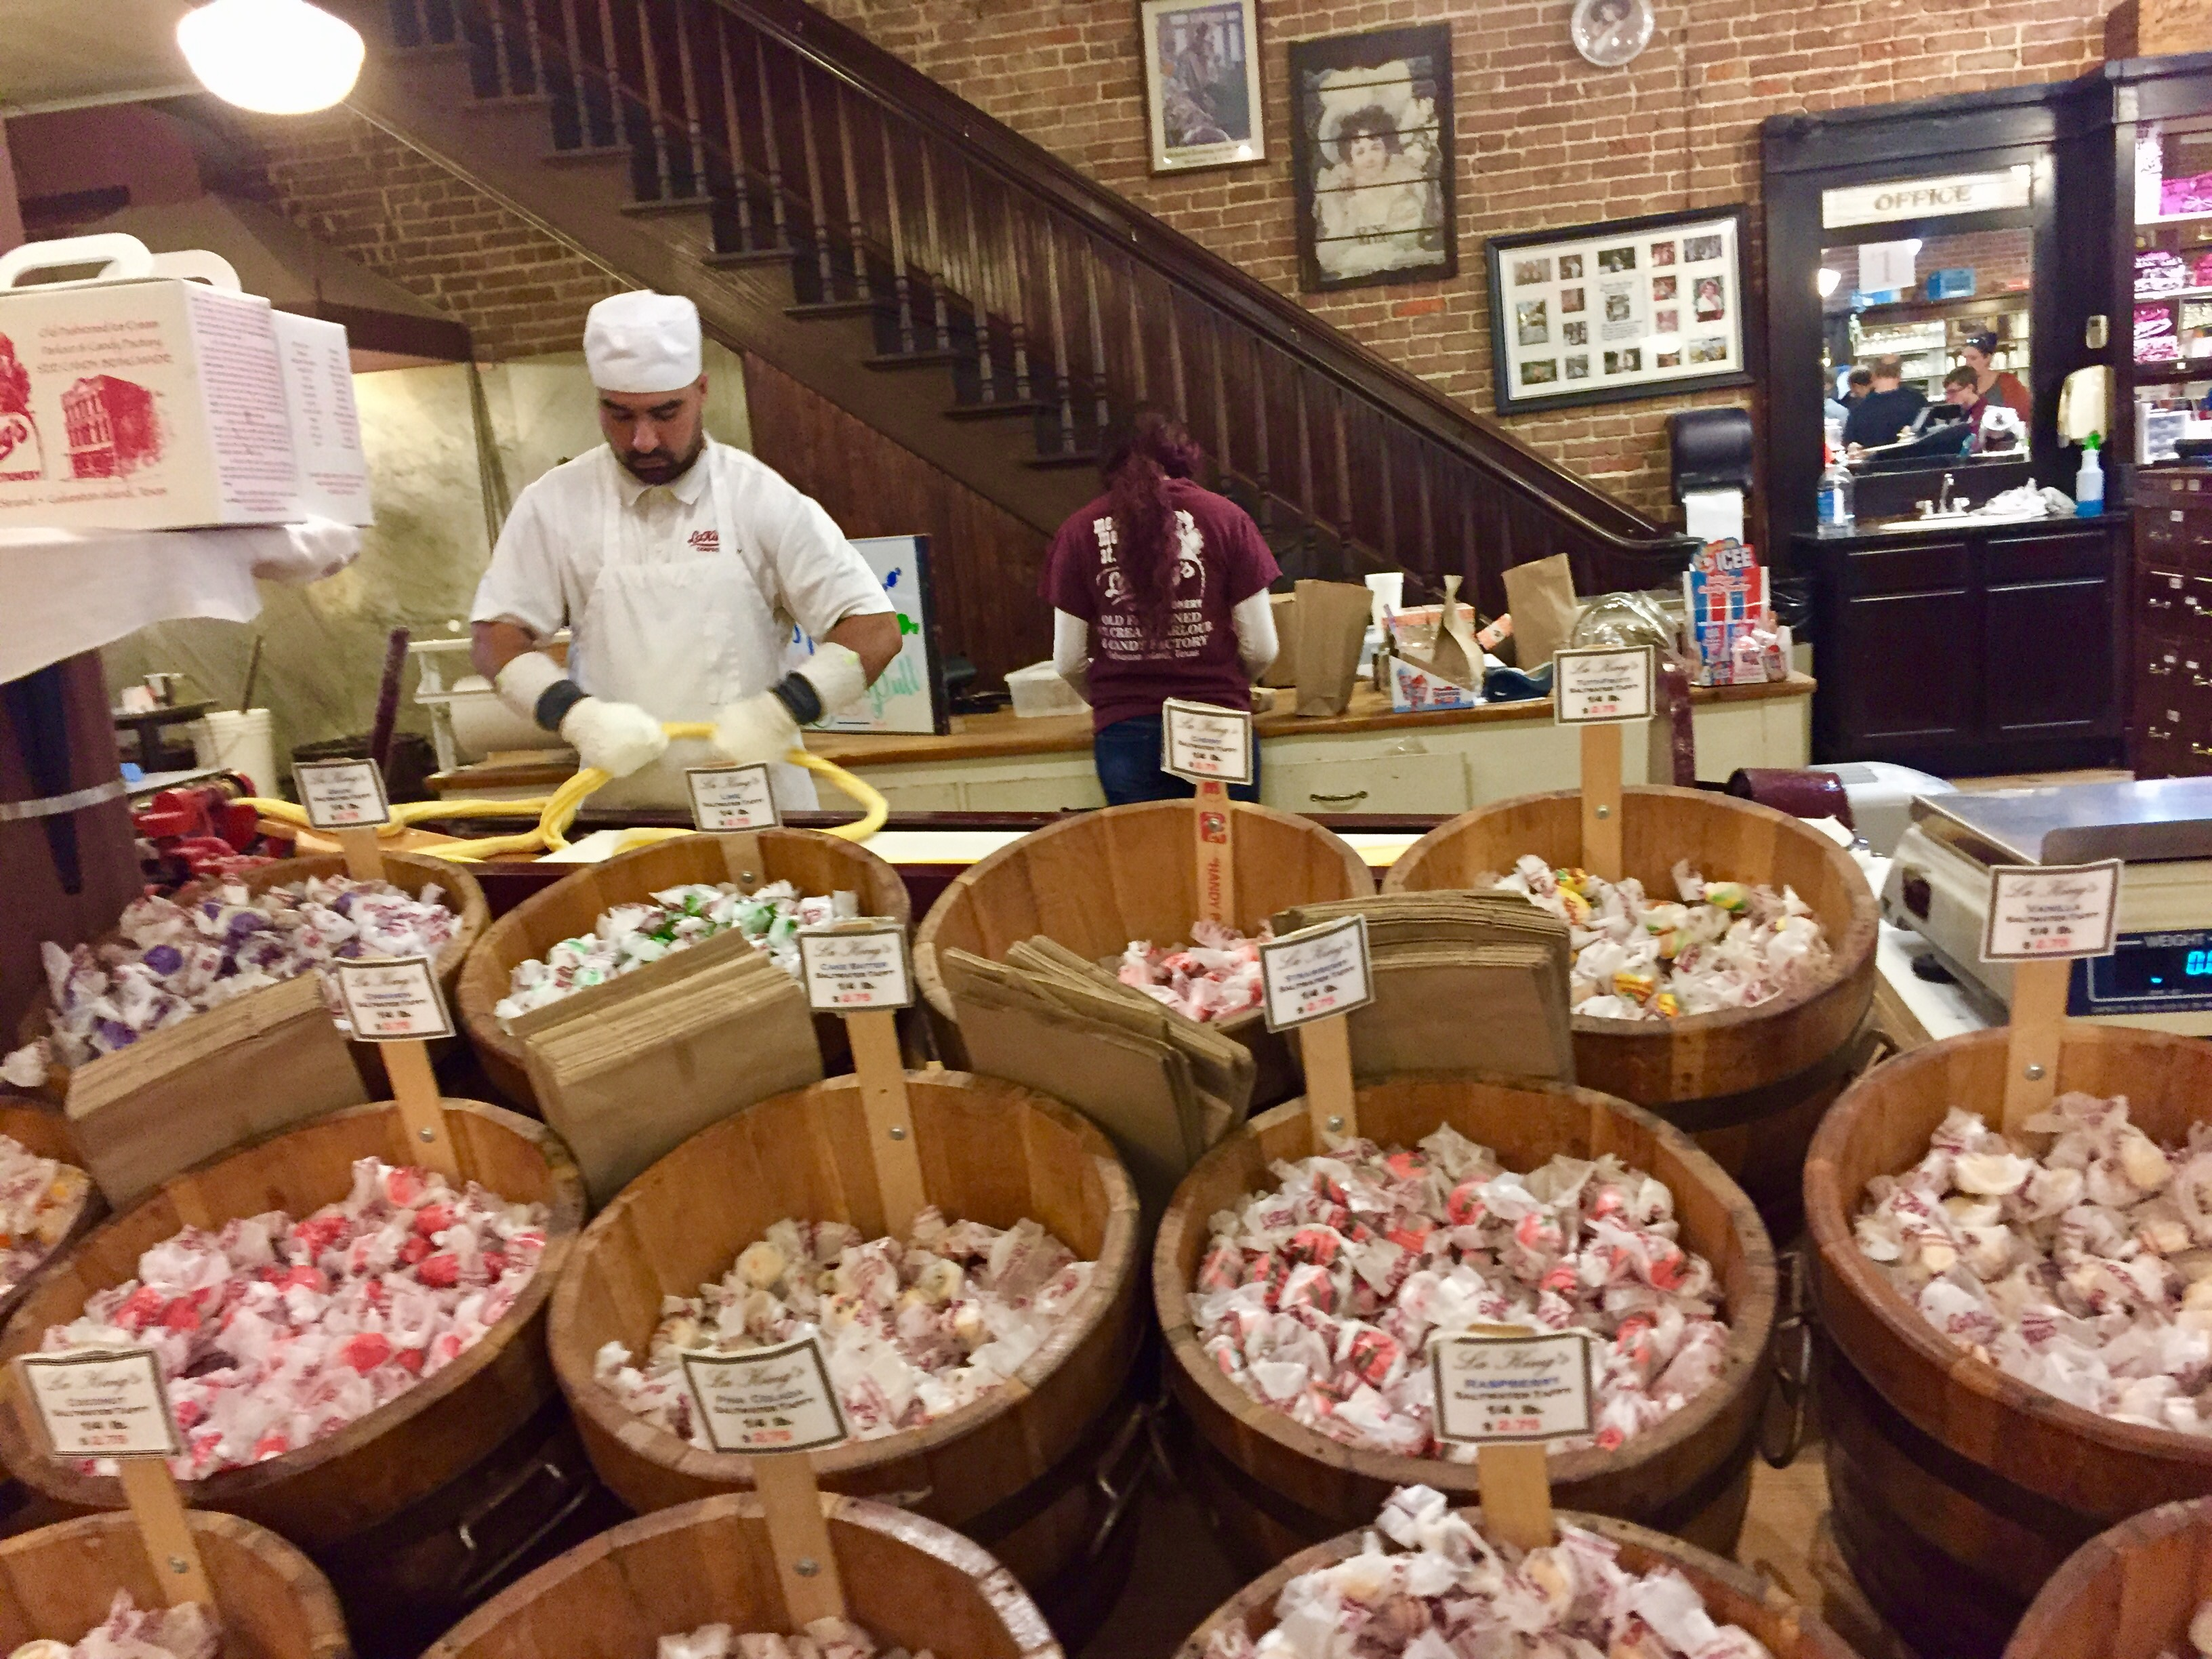 Meet the man who conjures up our temptations at La Kings Confectionary in Galveston, TX.